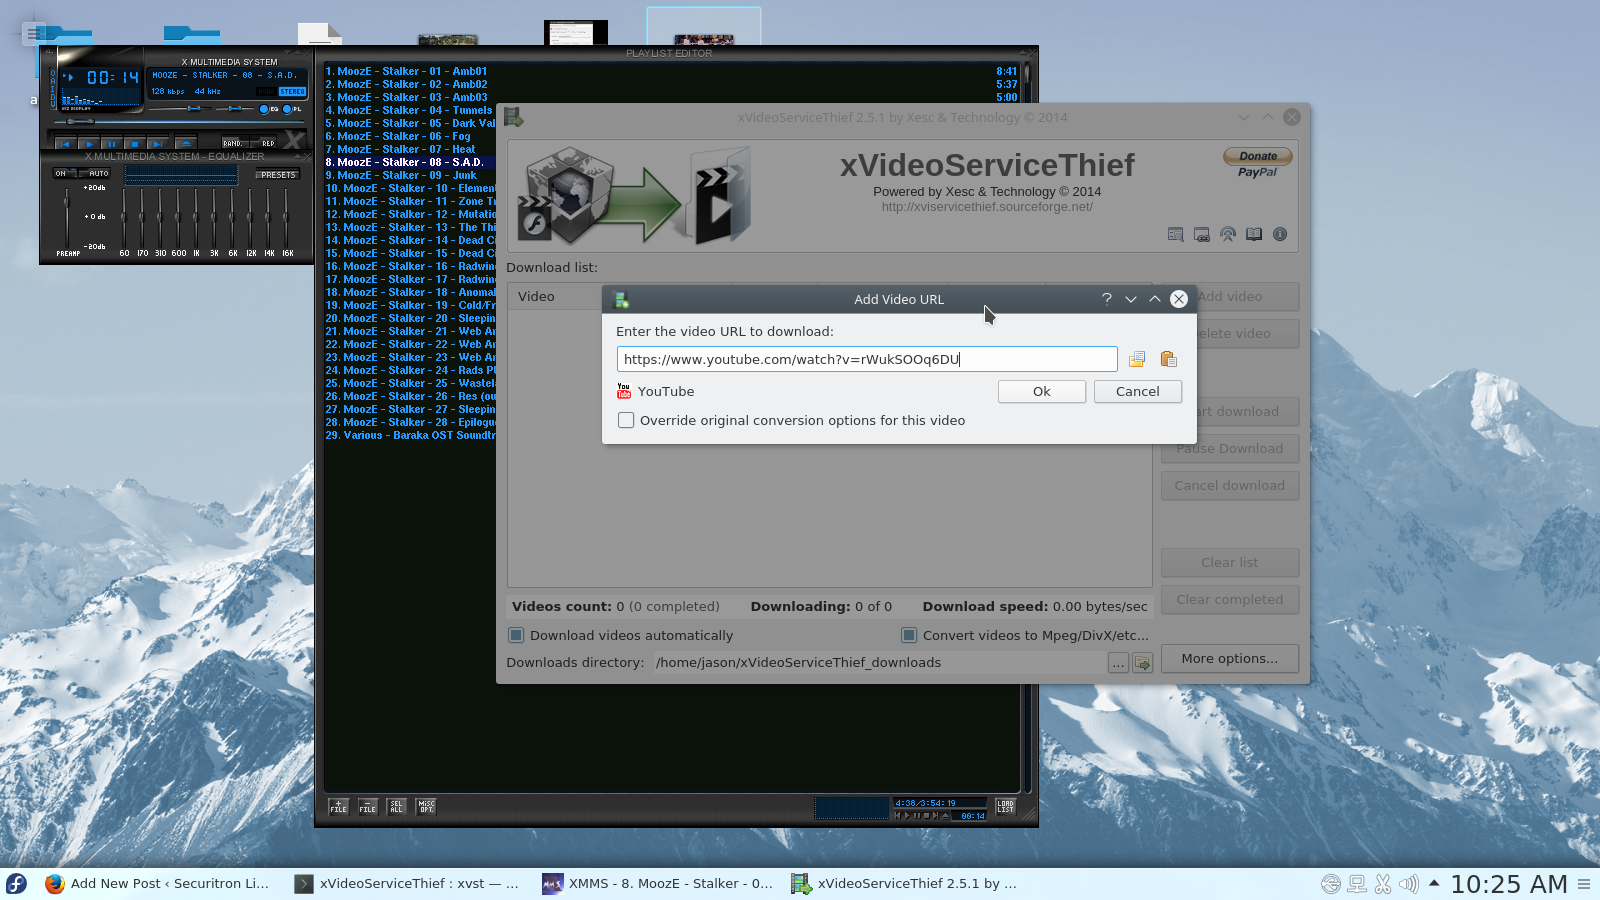 xvideoservicethief plugins linux video player download free full version